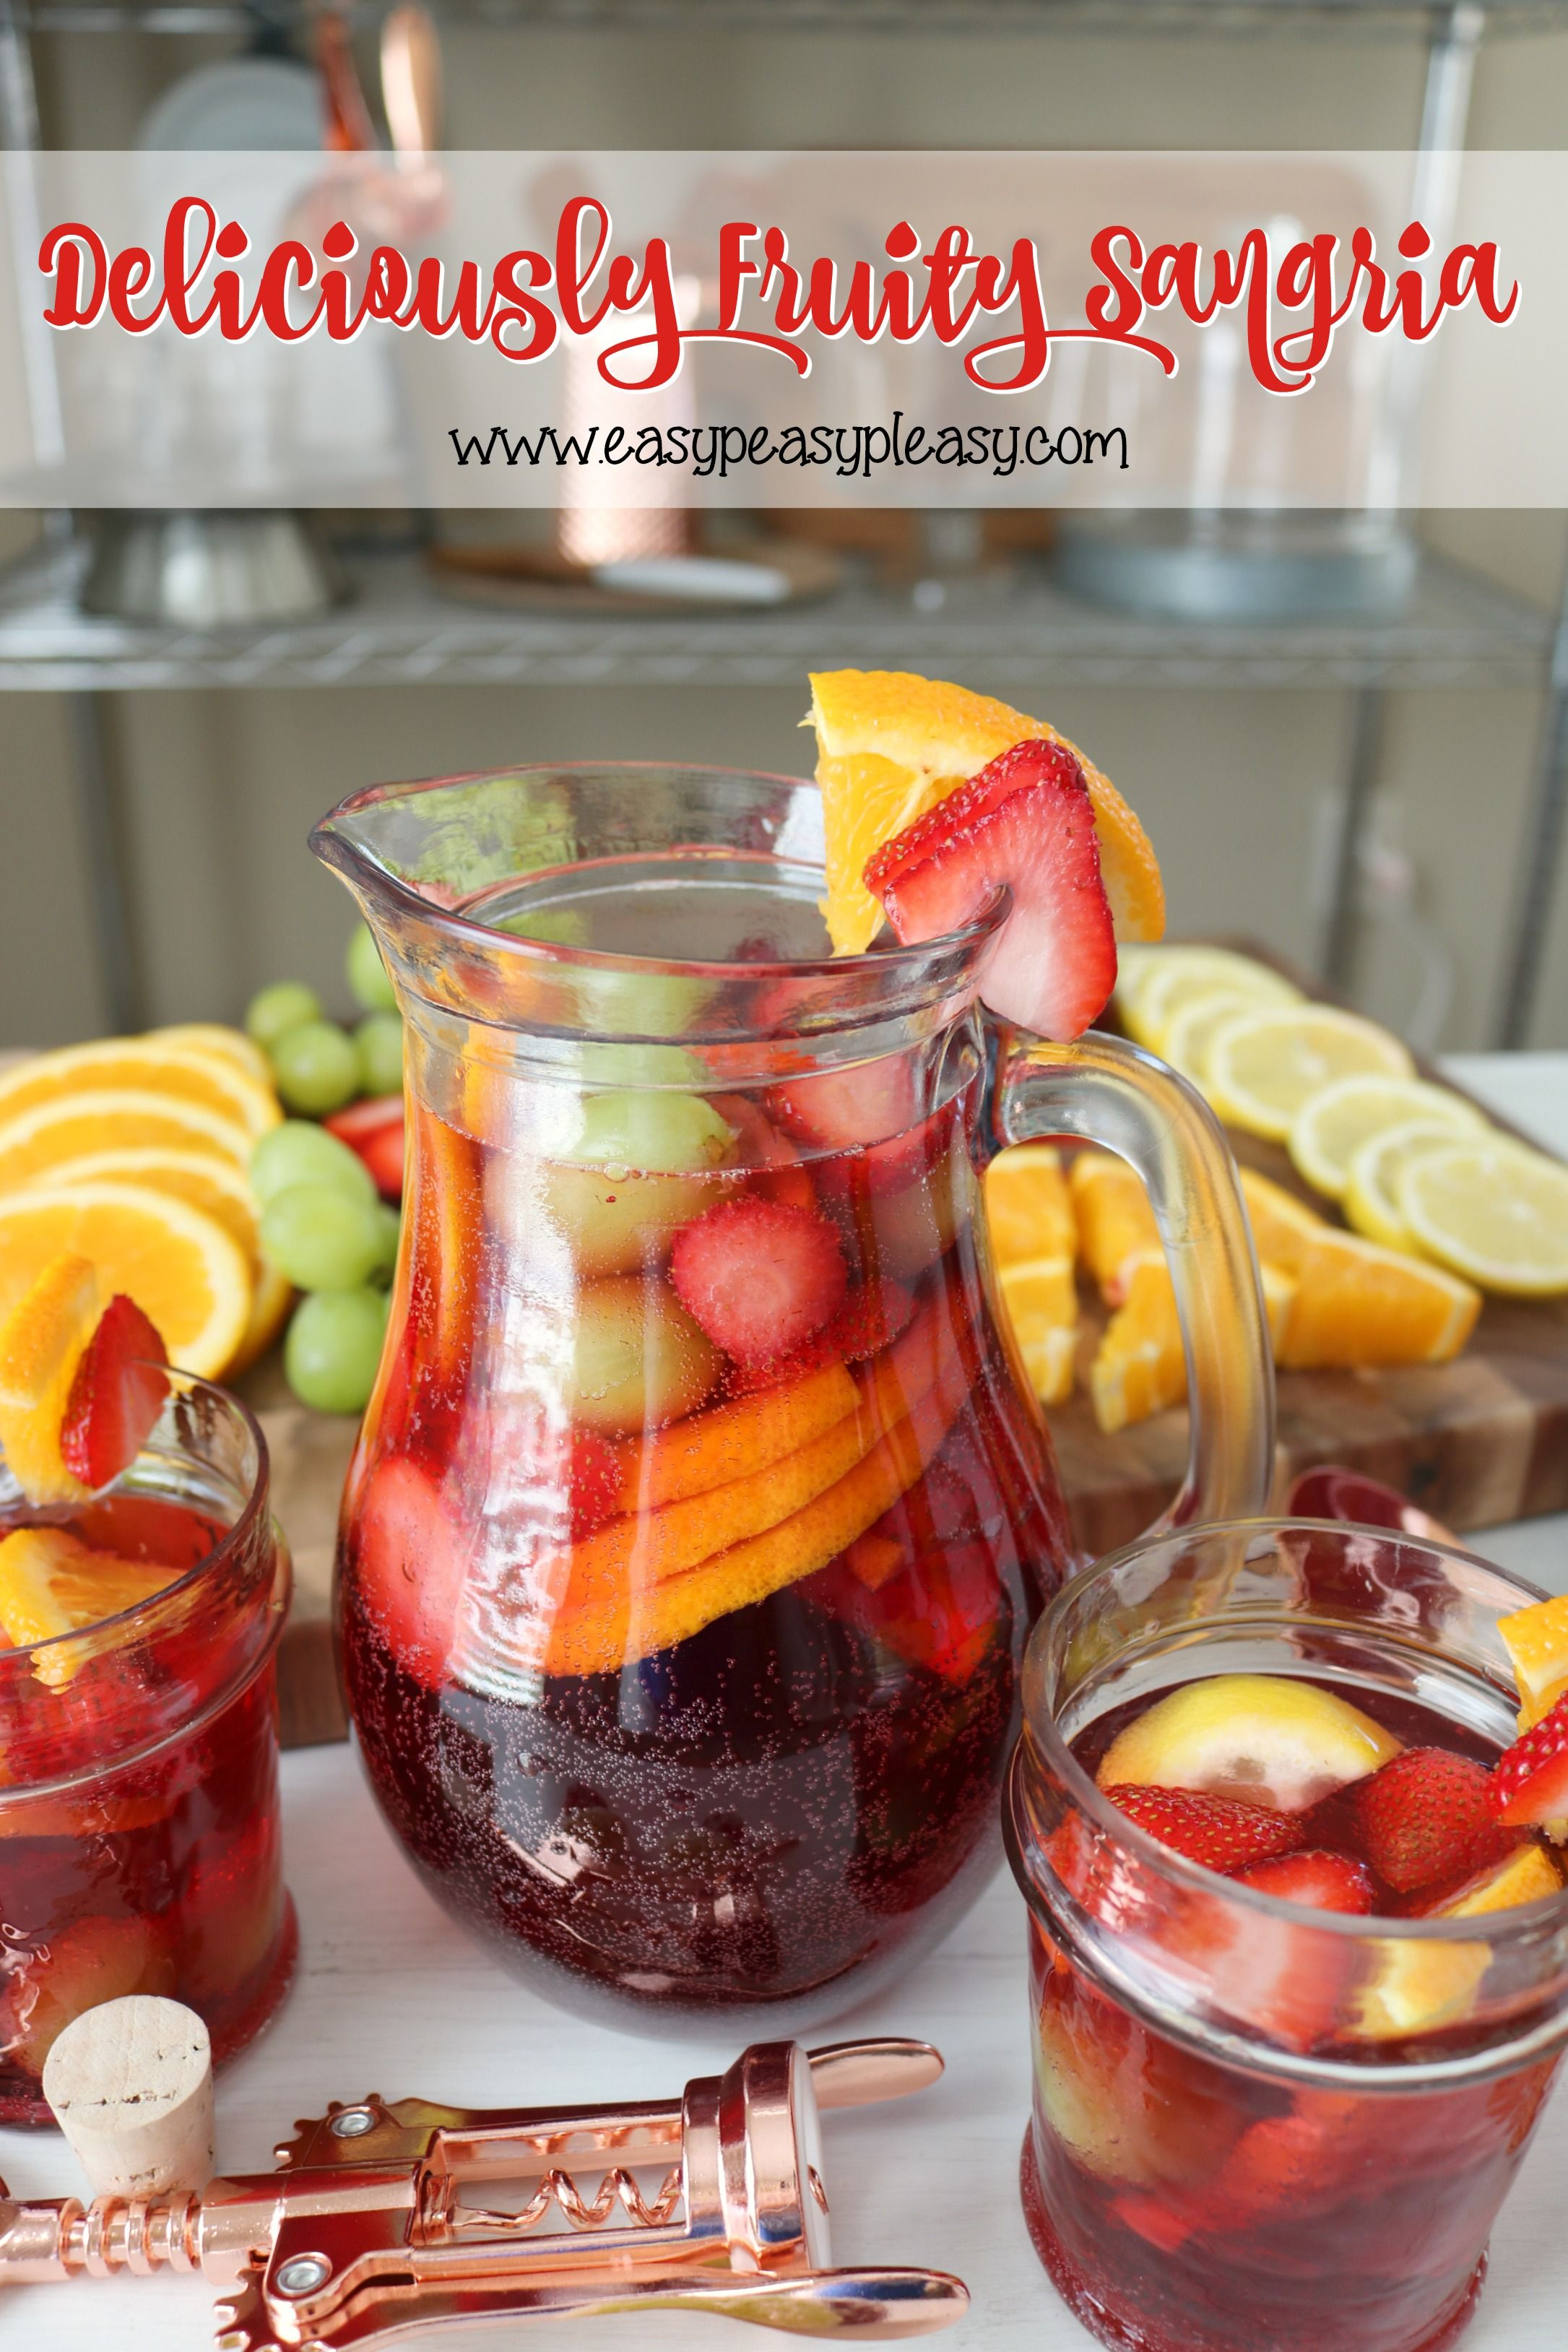 Deliciously Fruity Sangria Recipe - Easy Peasy Pleasy